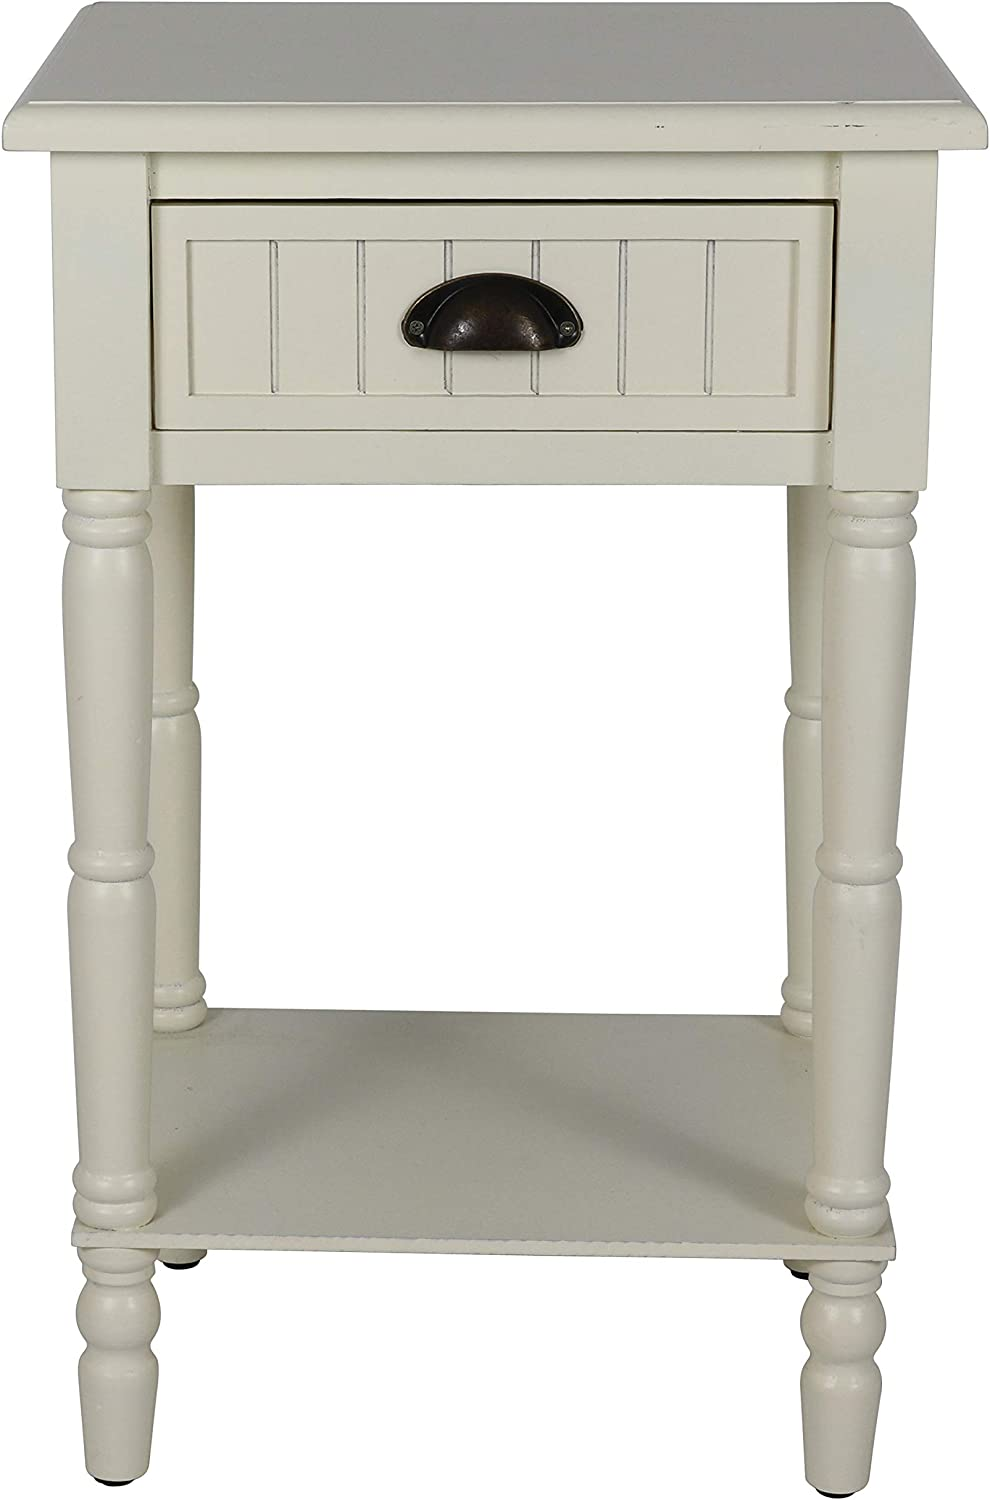 Décor Therapy Bailey Bead board 1-Drawer Accent Table, 14x17x26.5, Antique White